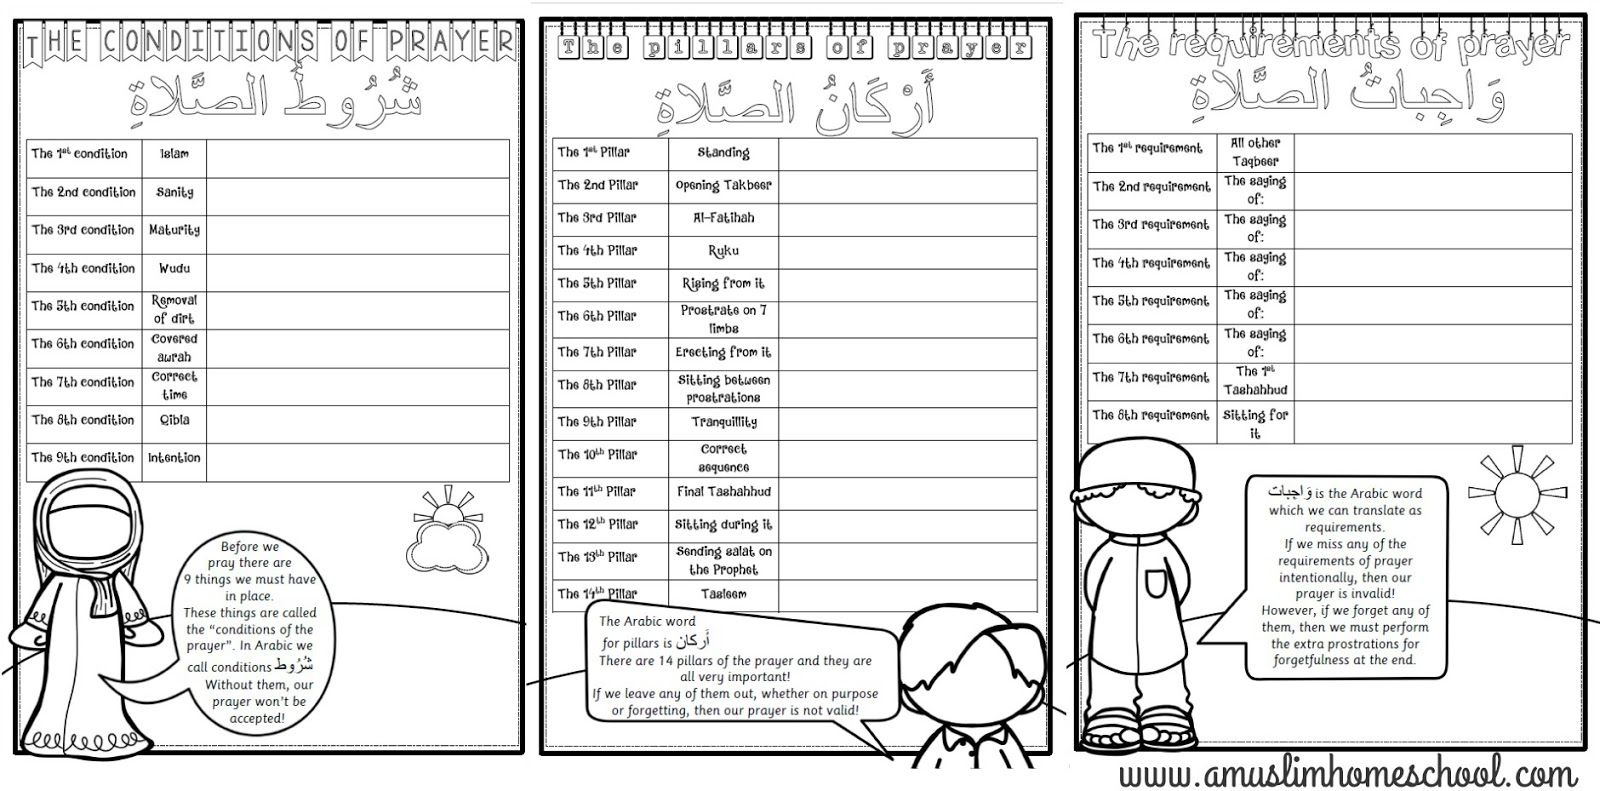 Salaah Worksheet Folder Printable The Conditions Pillars And